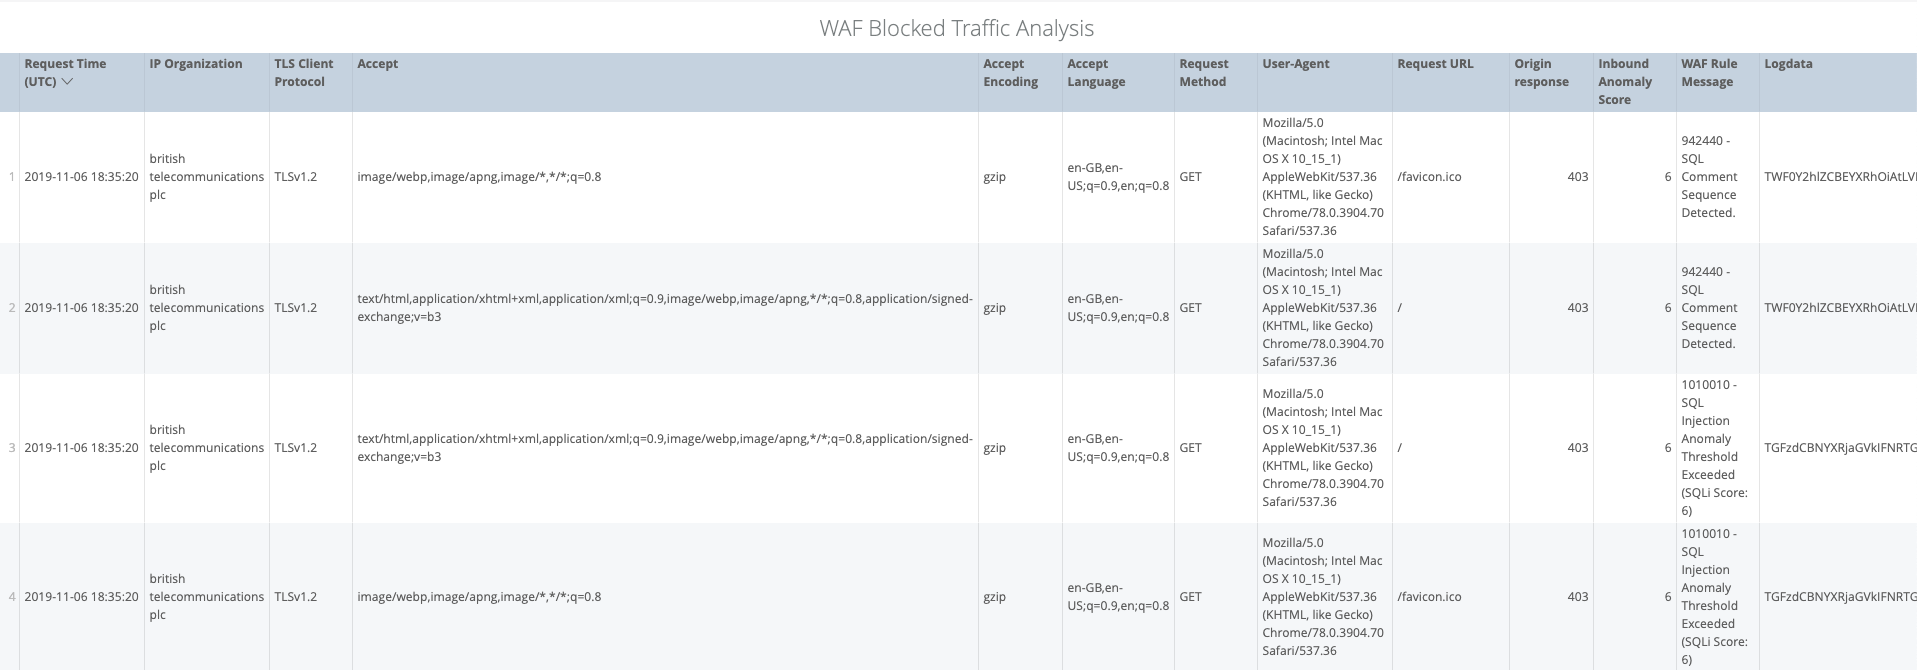 WAF Blocked Traffic Analysis